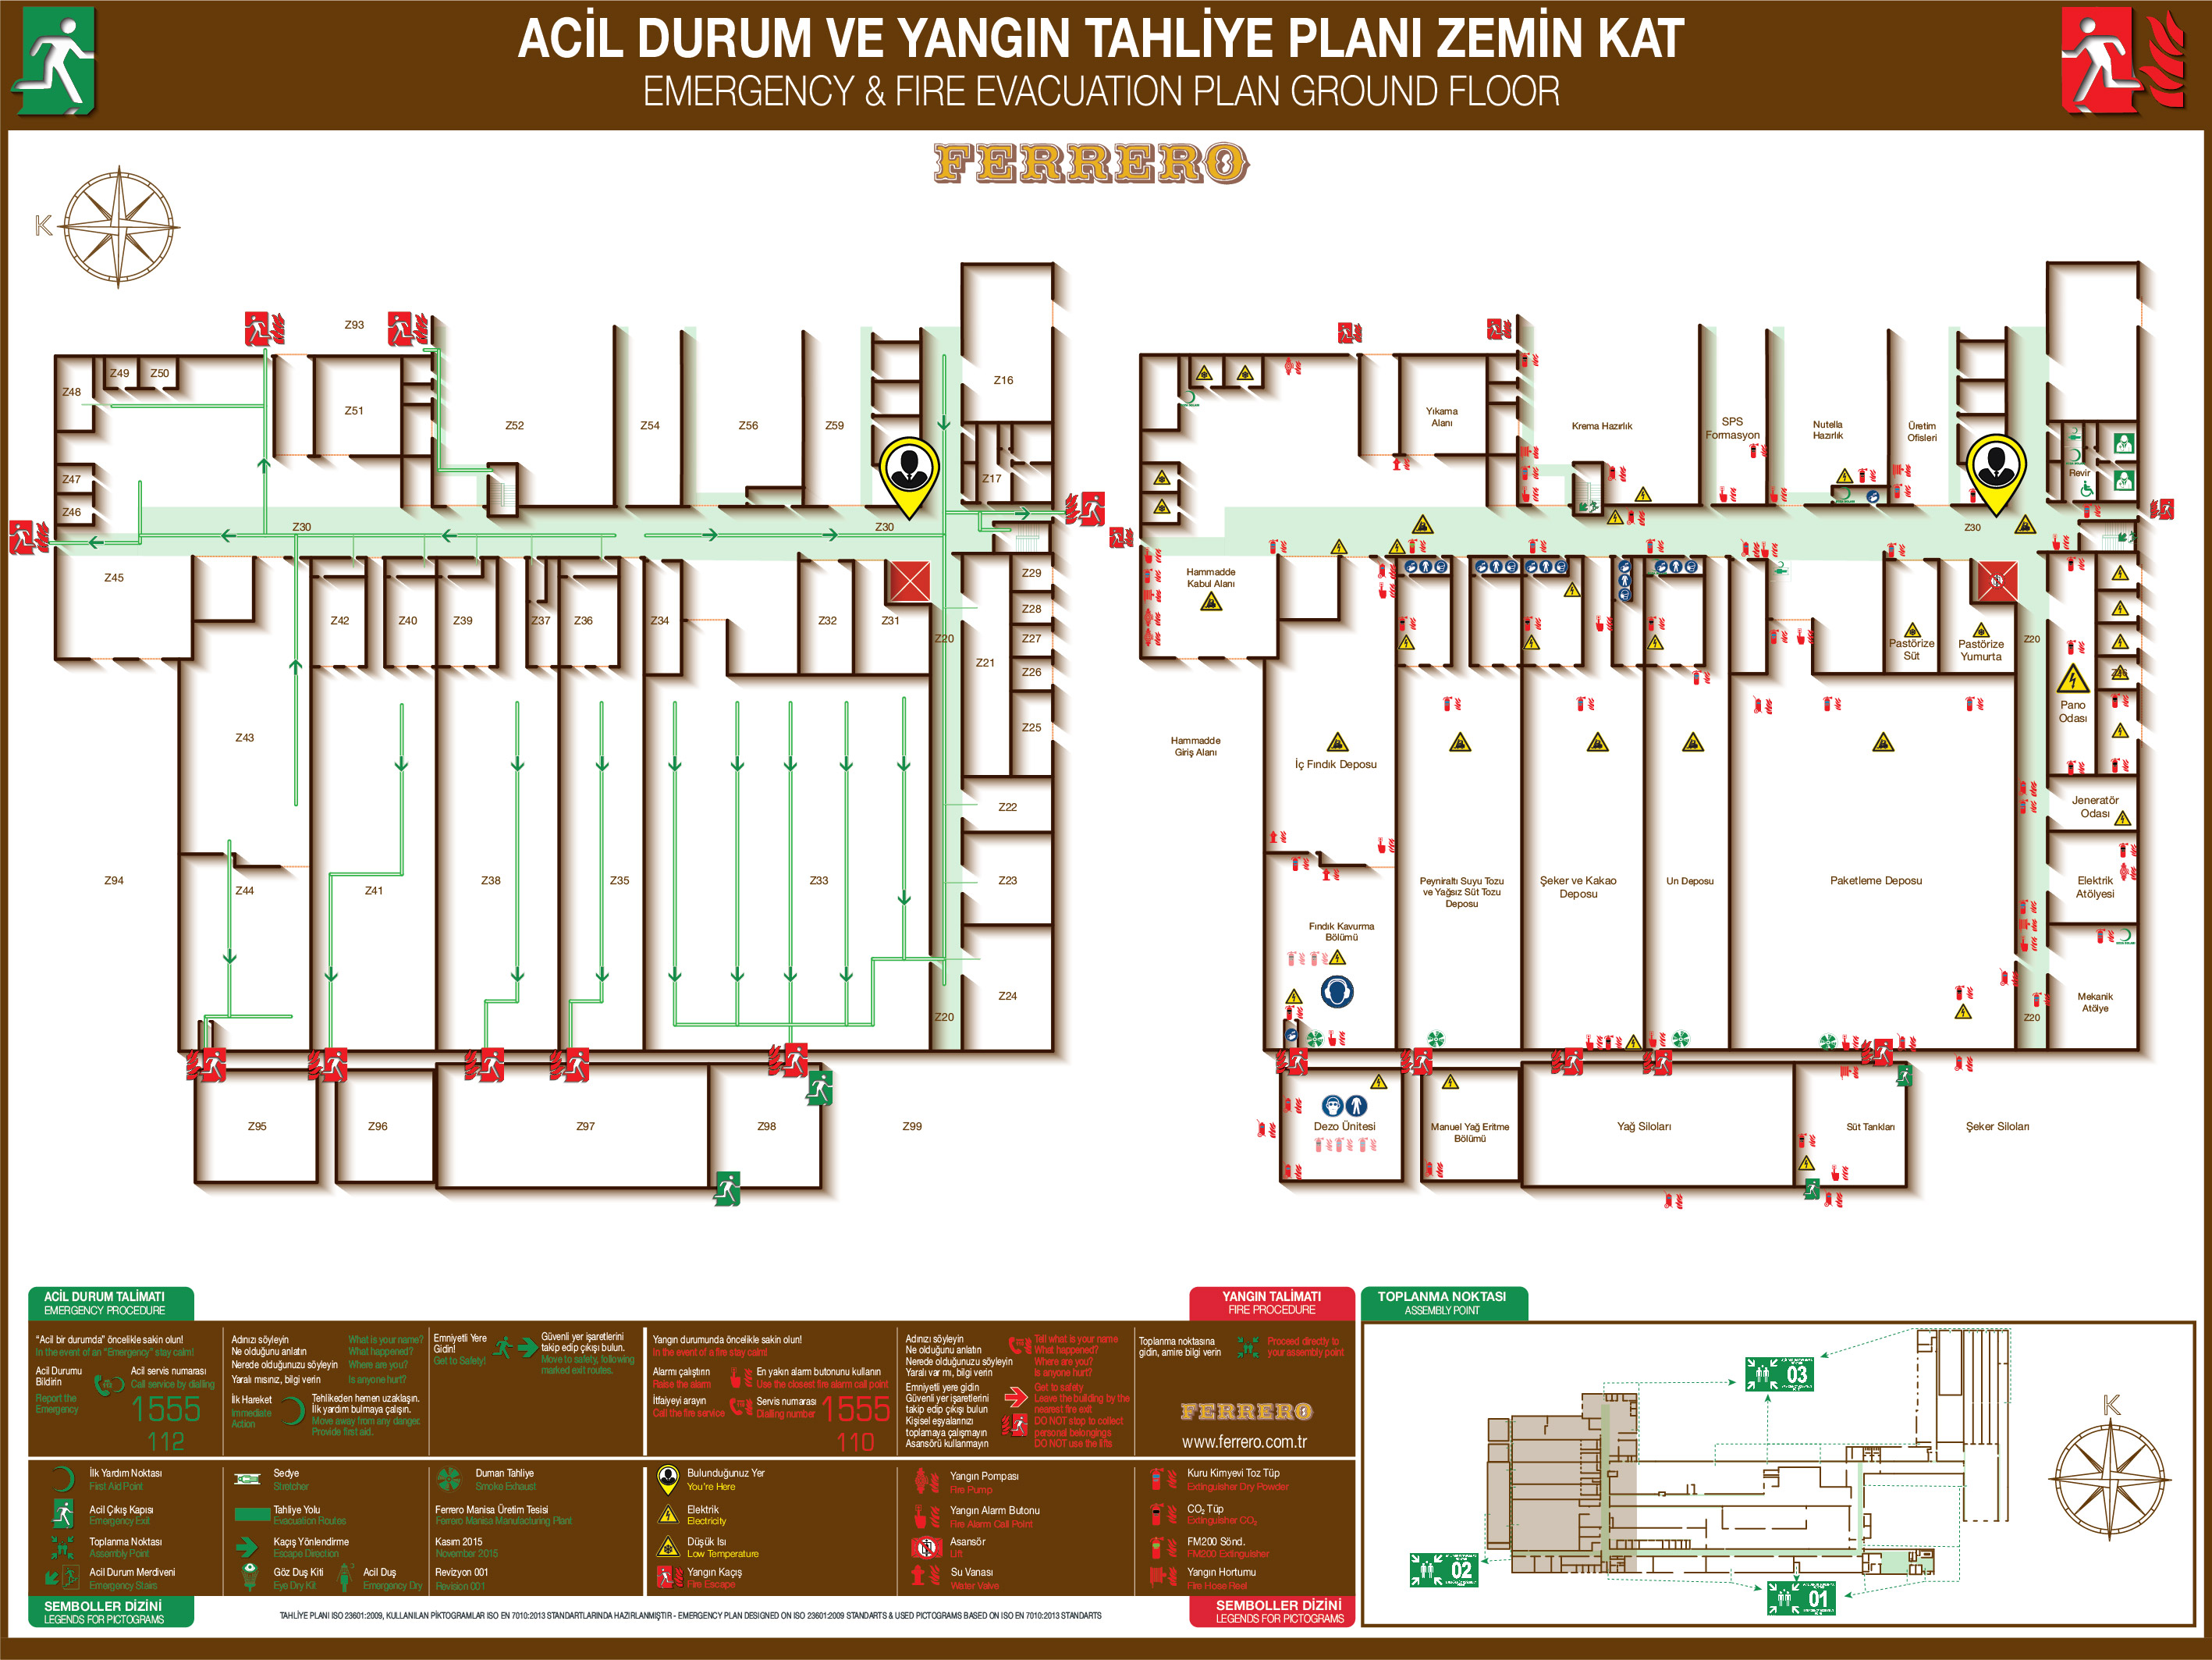 Emergency plan template evacuation plan templates fire emergency fire evacuation plan template bcg model in marketing ferrero evacuation map template 005 plan a1 sciox Images